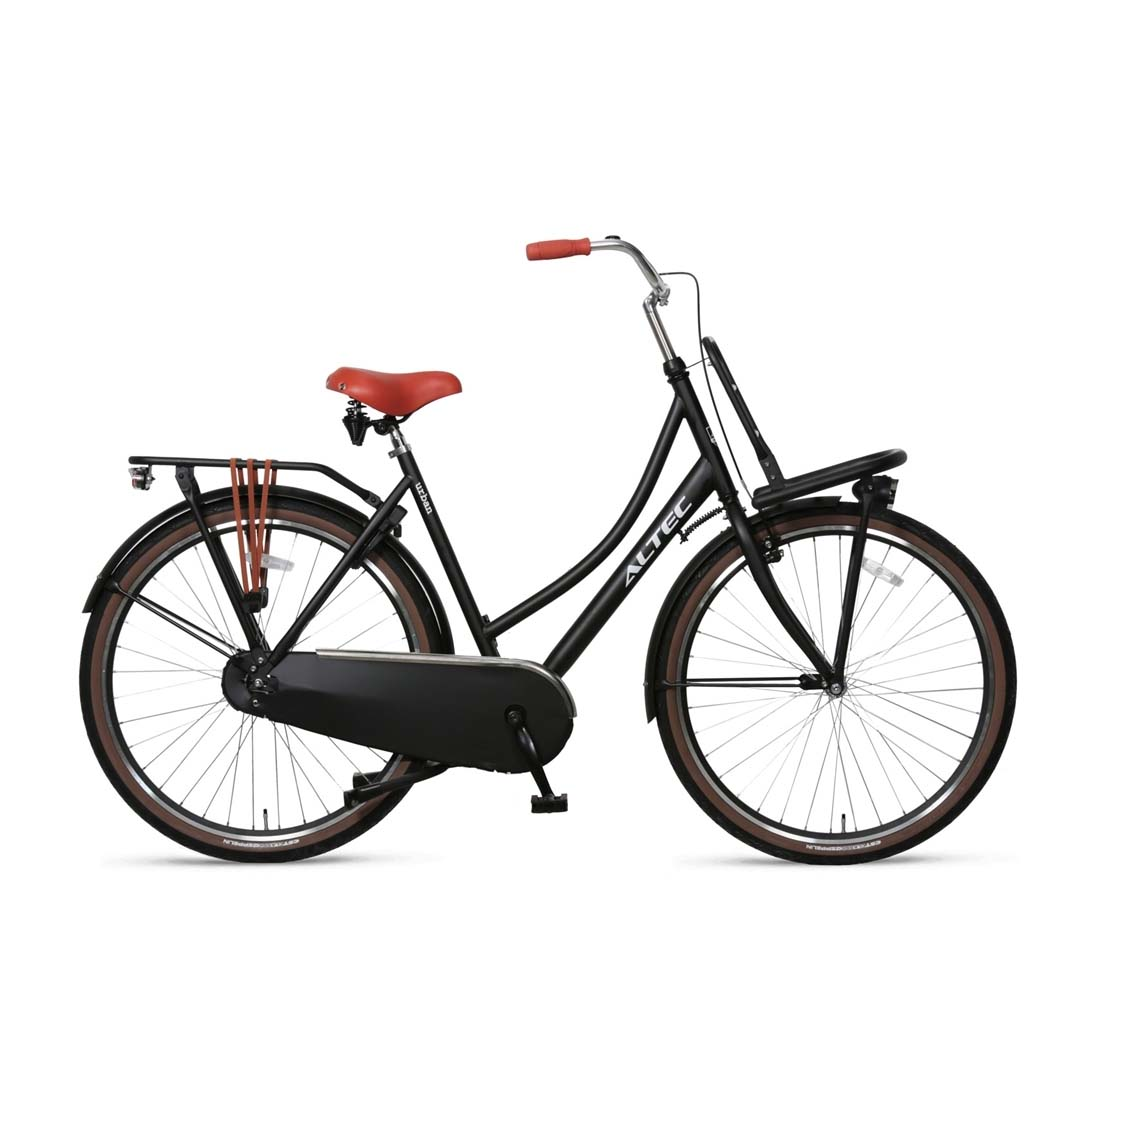 Altec-Urban-28inch-Transportfiets-50-Zwart-2019 copy